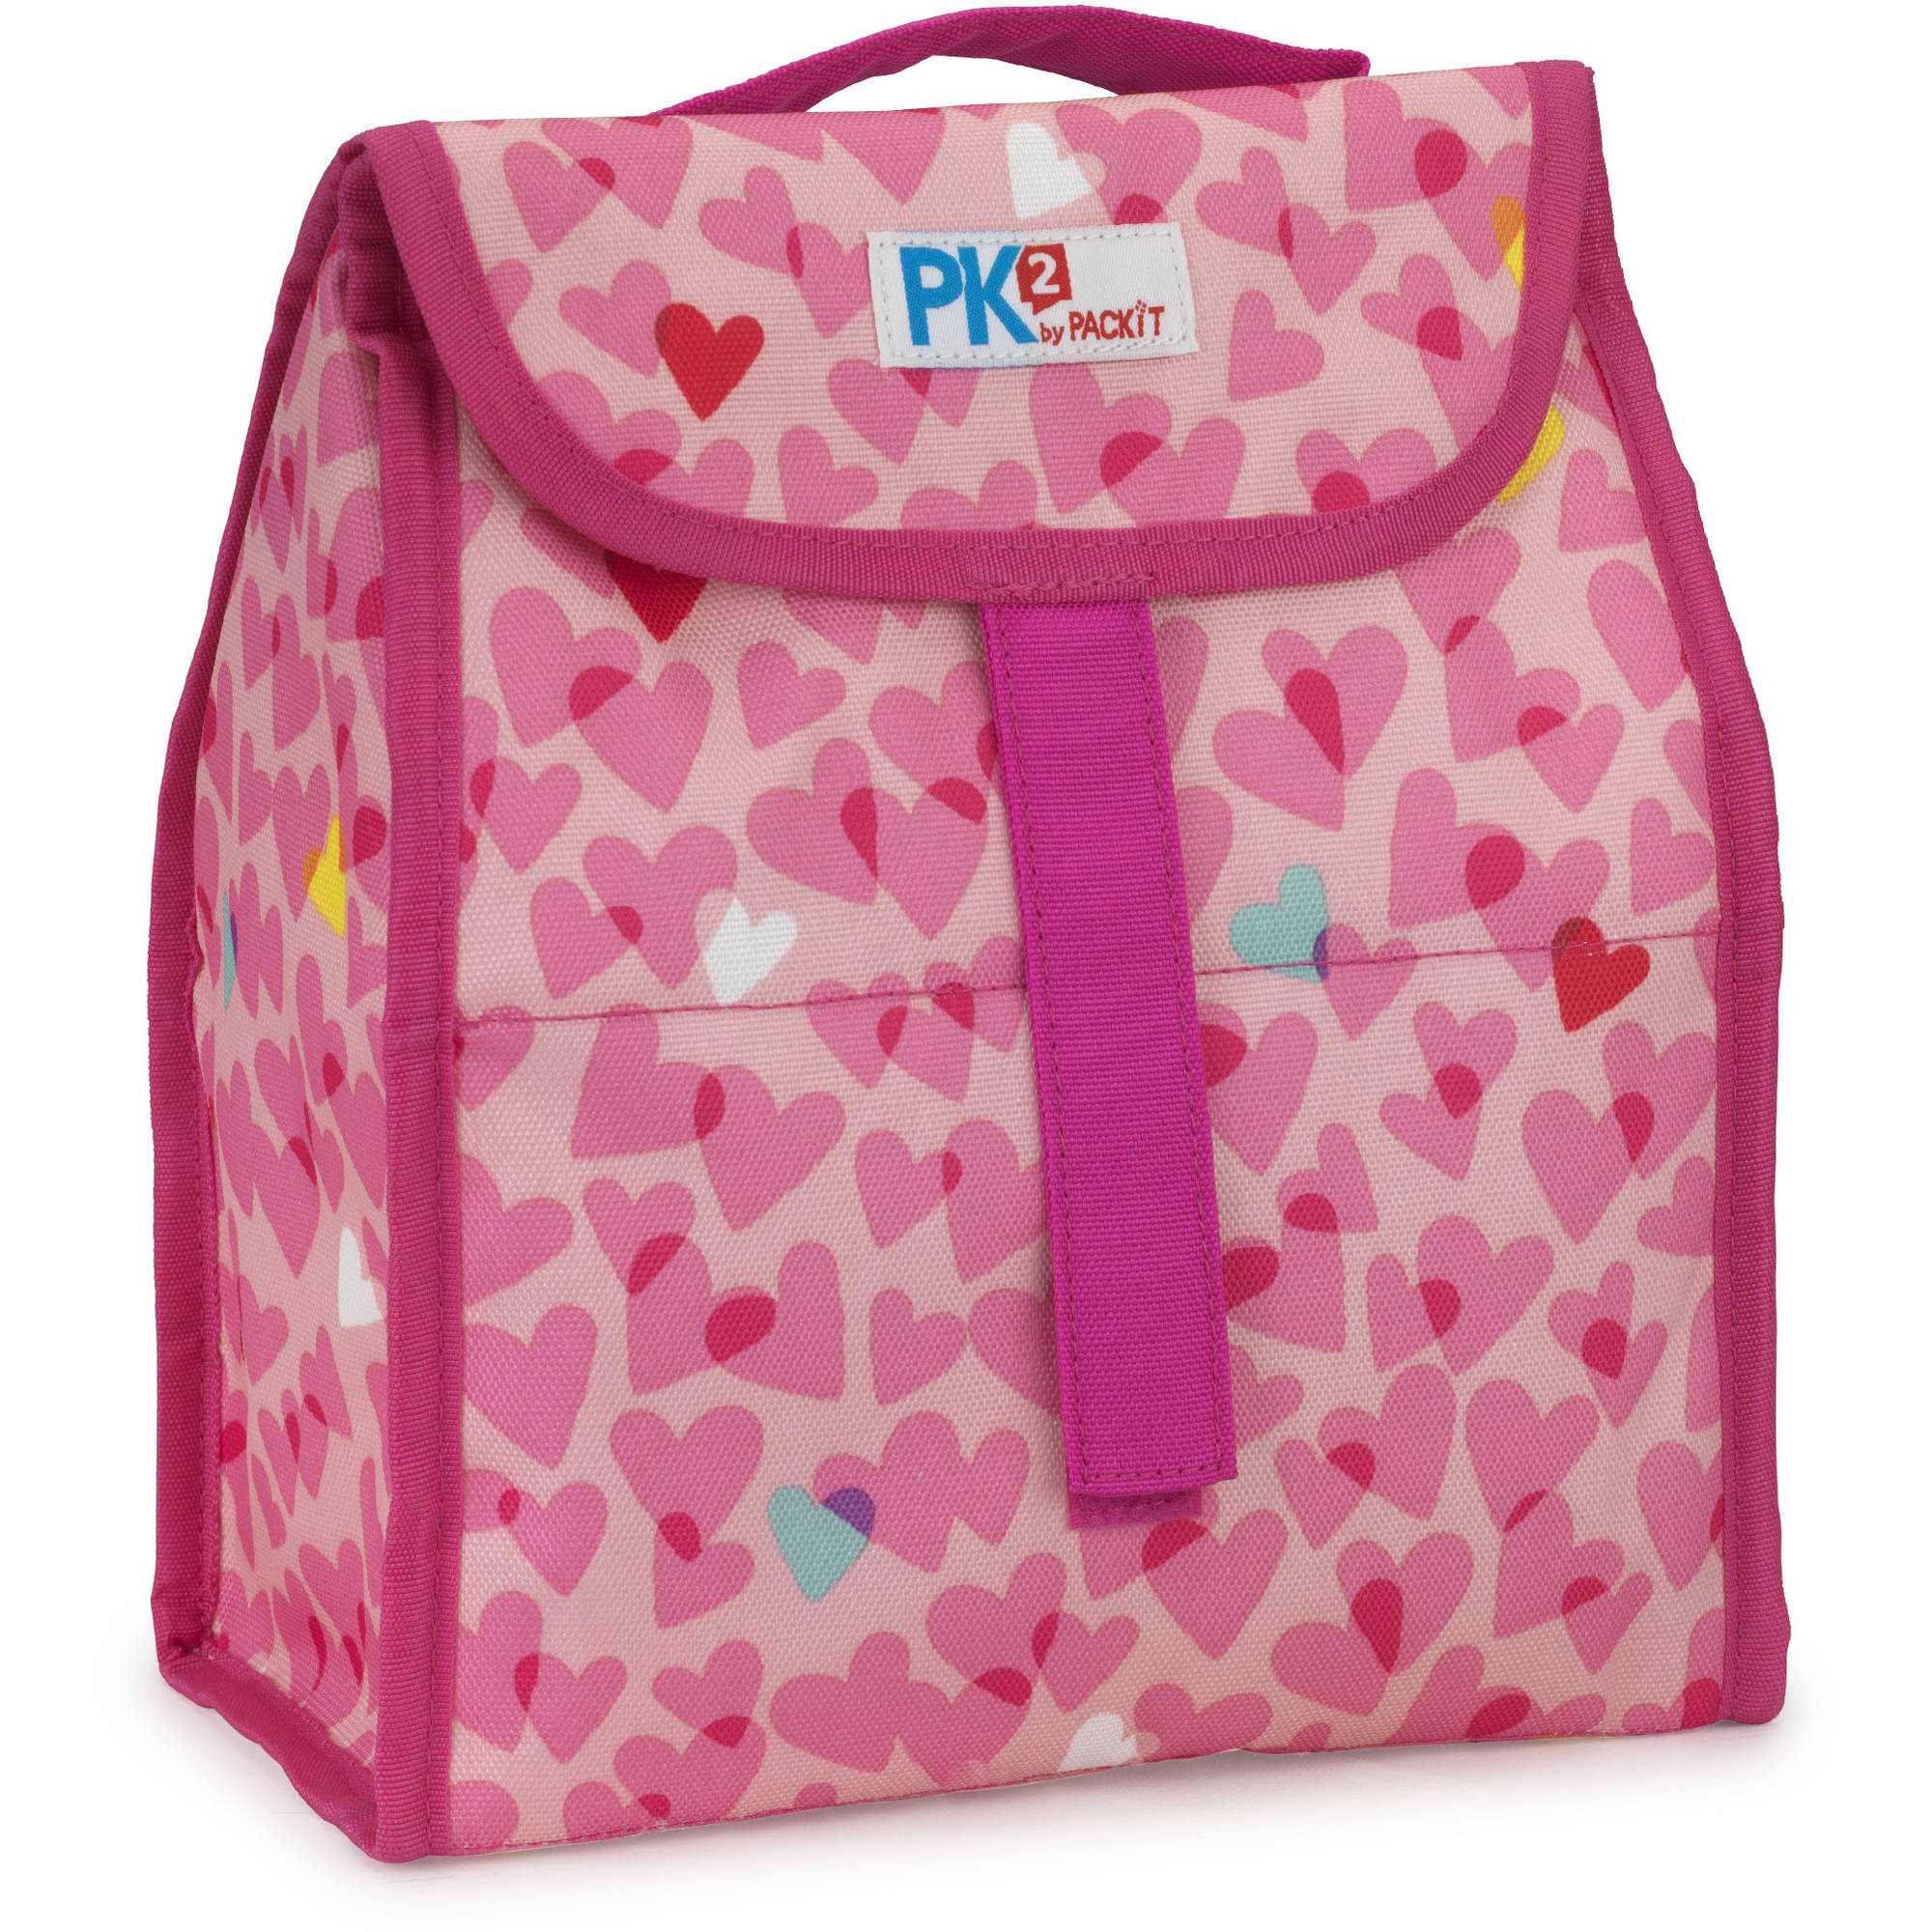 PackIt PK2 Lunch Sack, Hearts